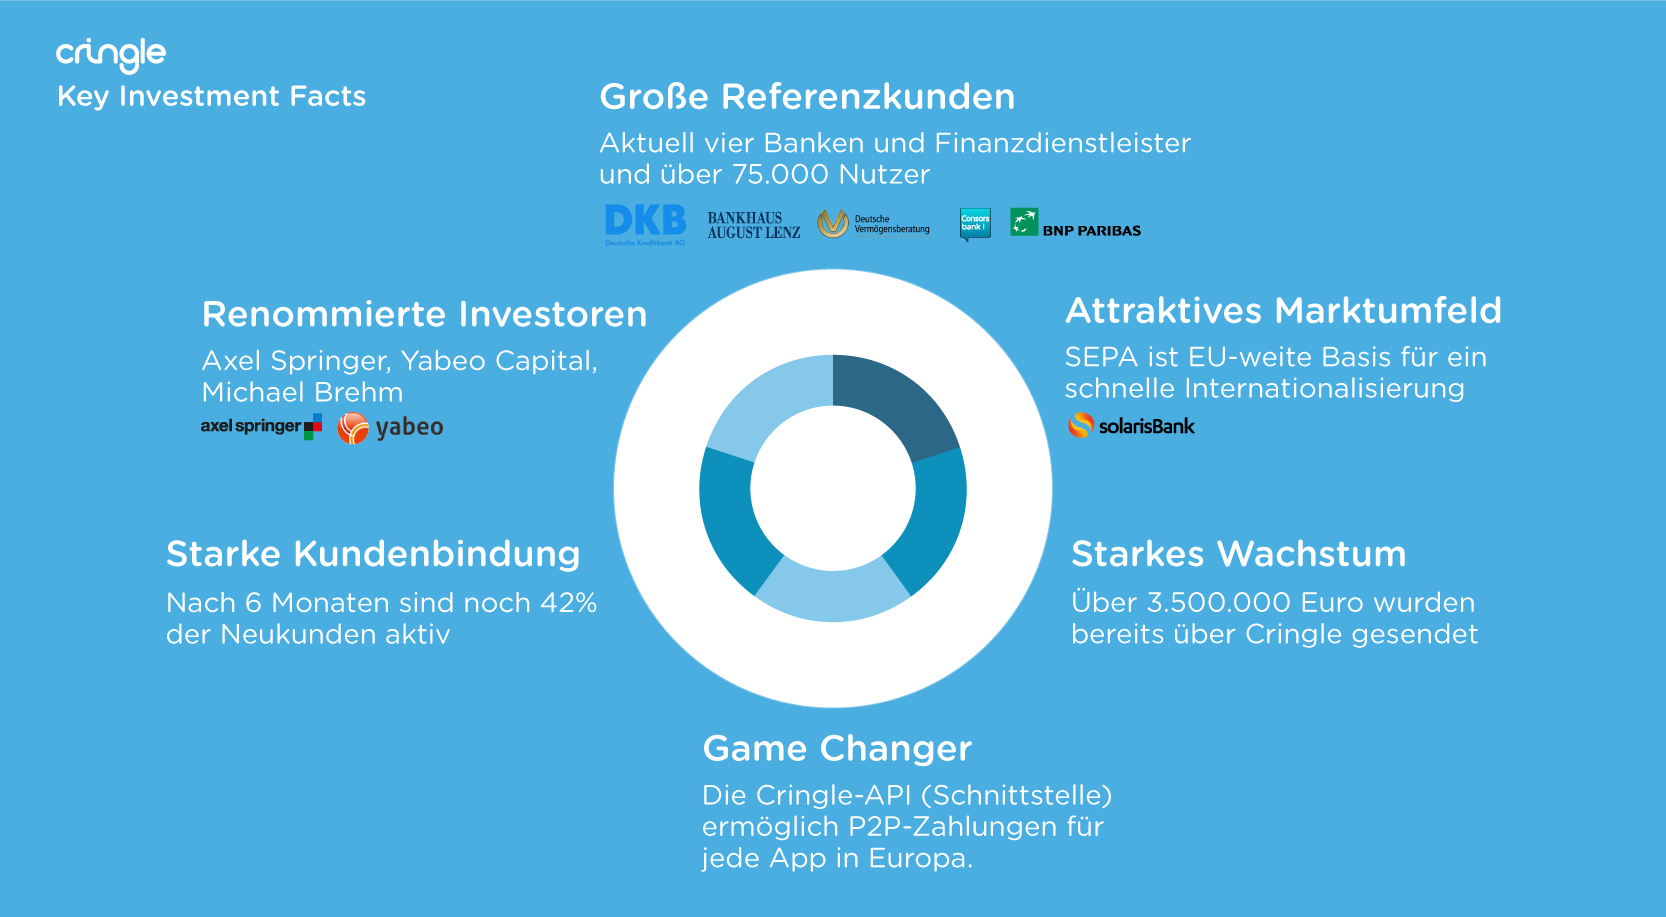 Cringle - Key Investment Facts